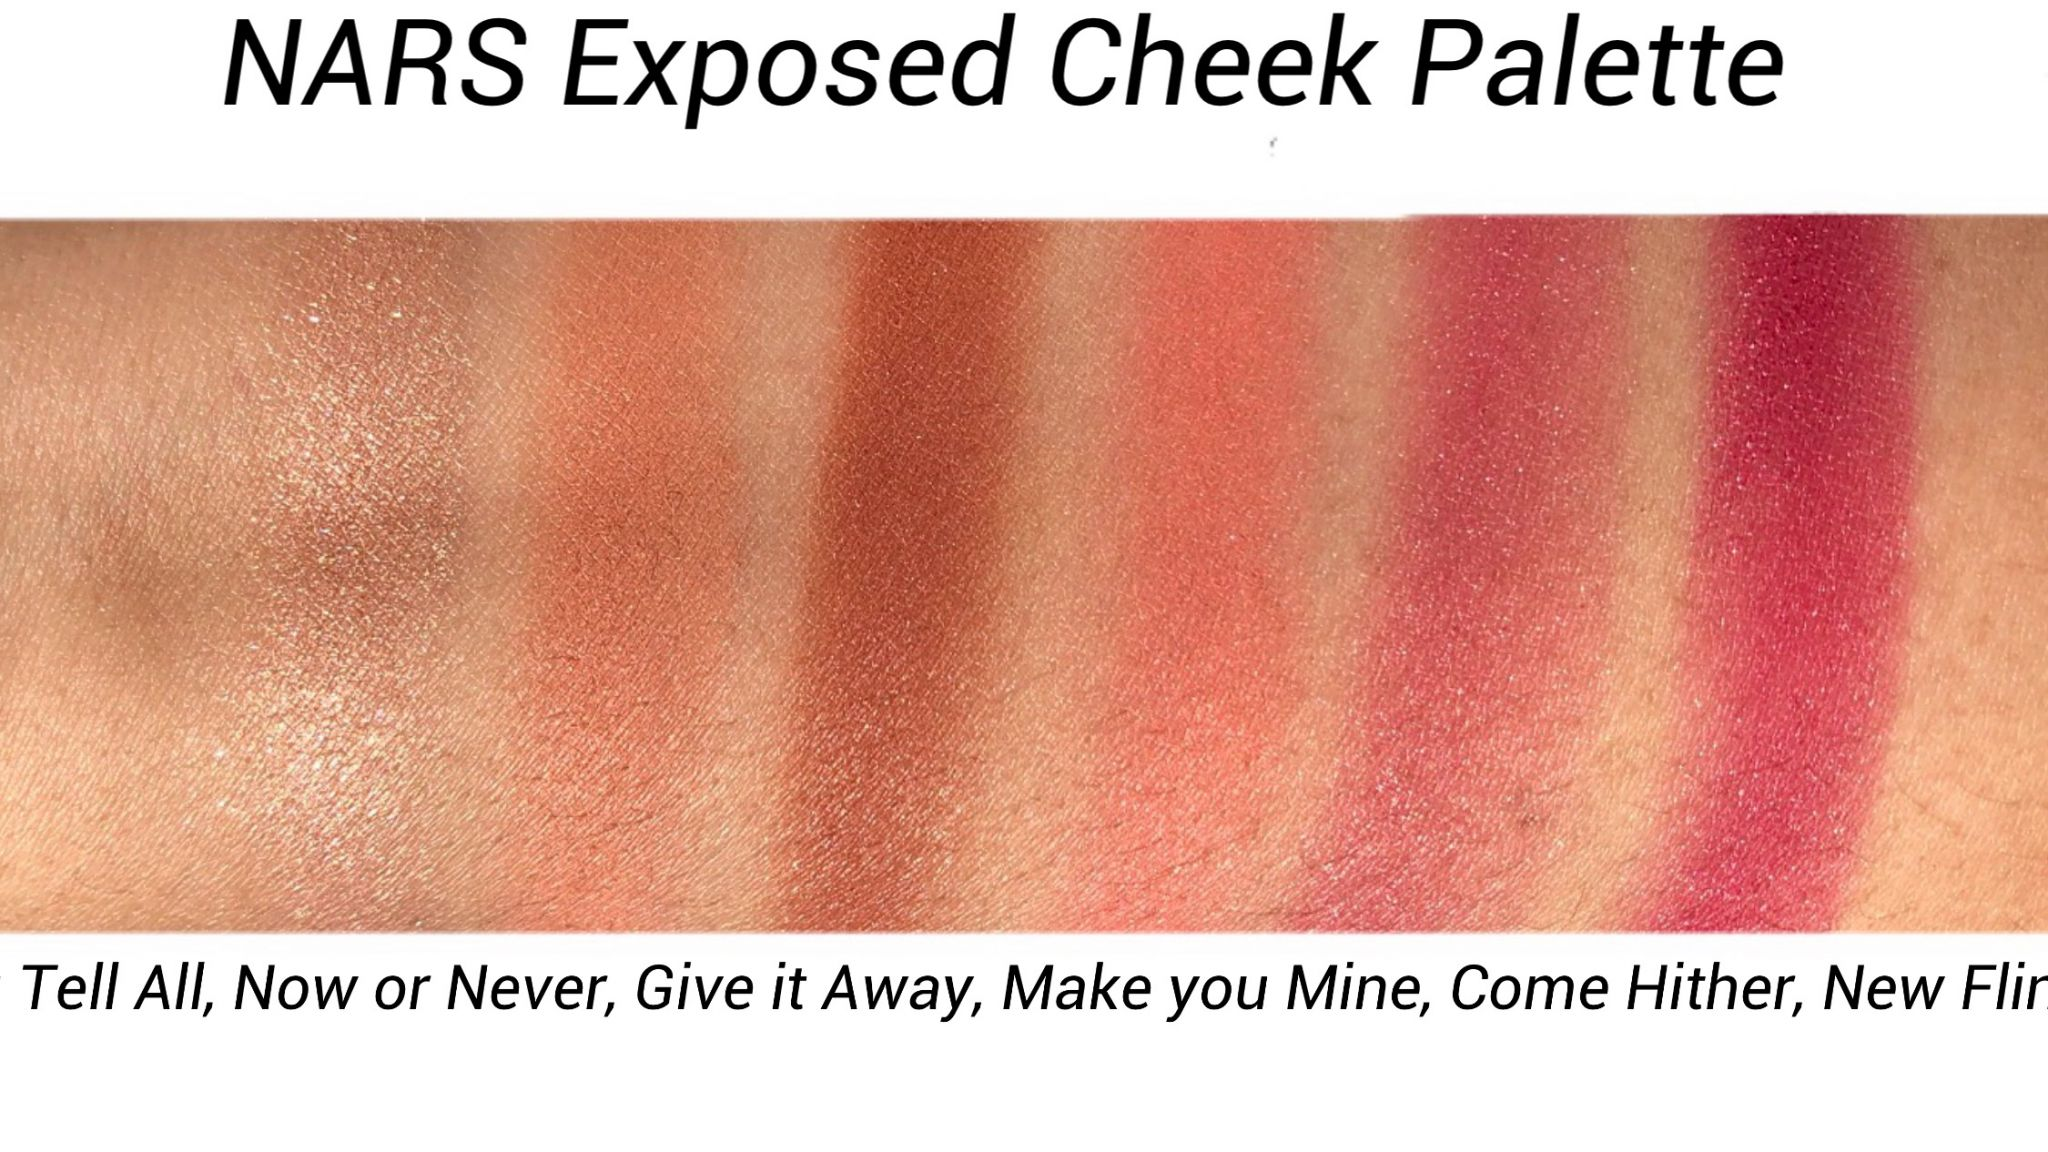 Exposed Cheek Palette by NARS #5